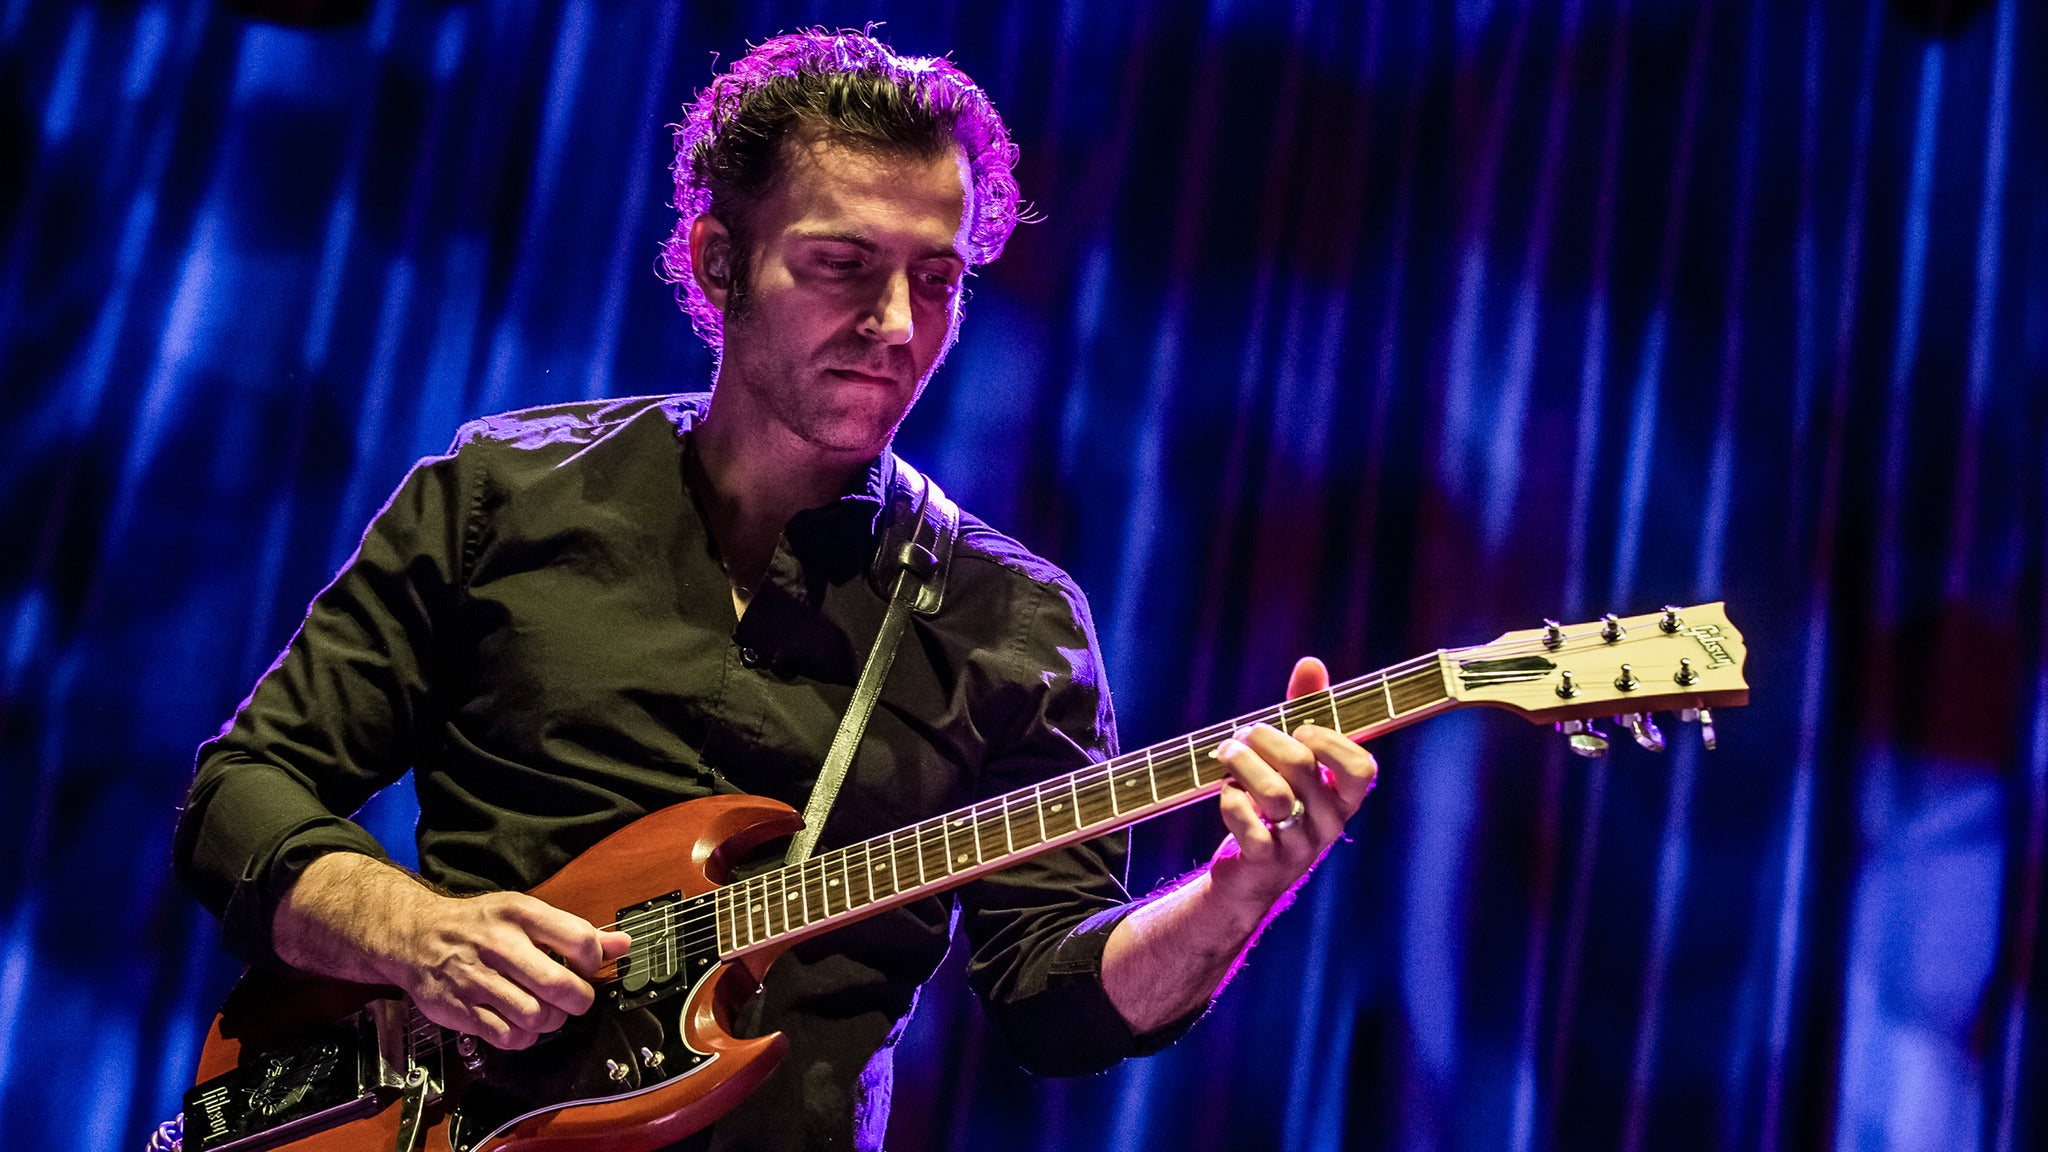 An Evening with Dweezil Zappa